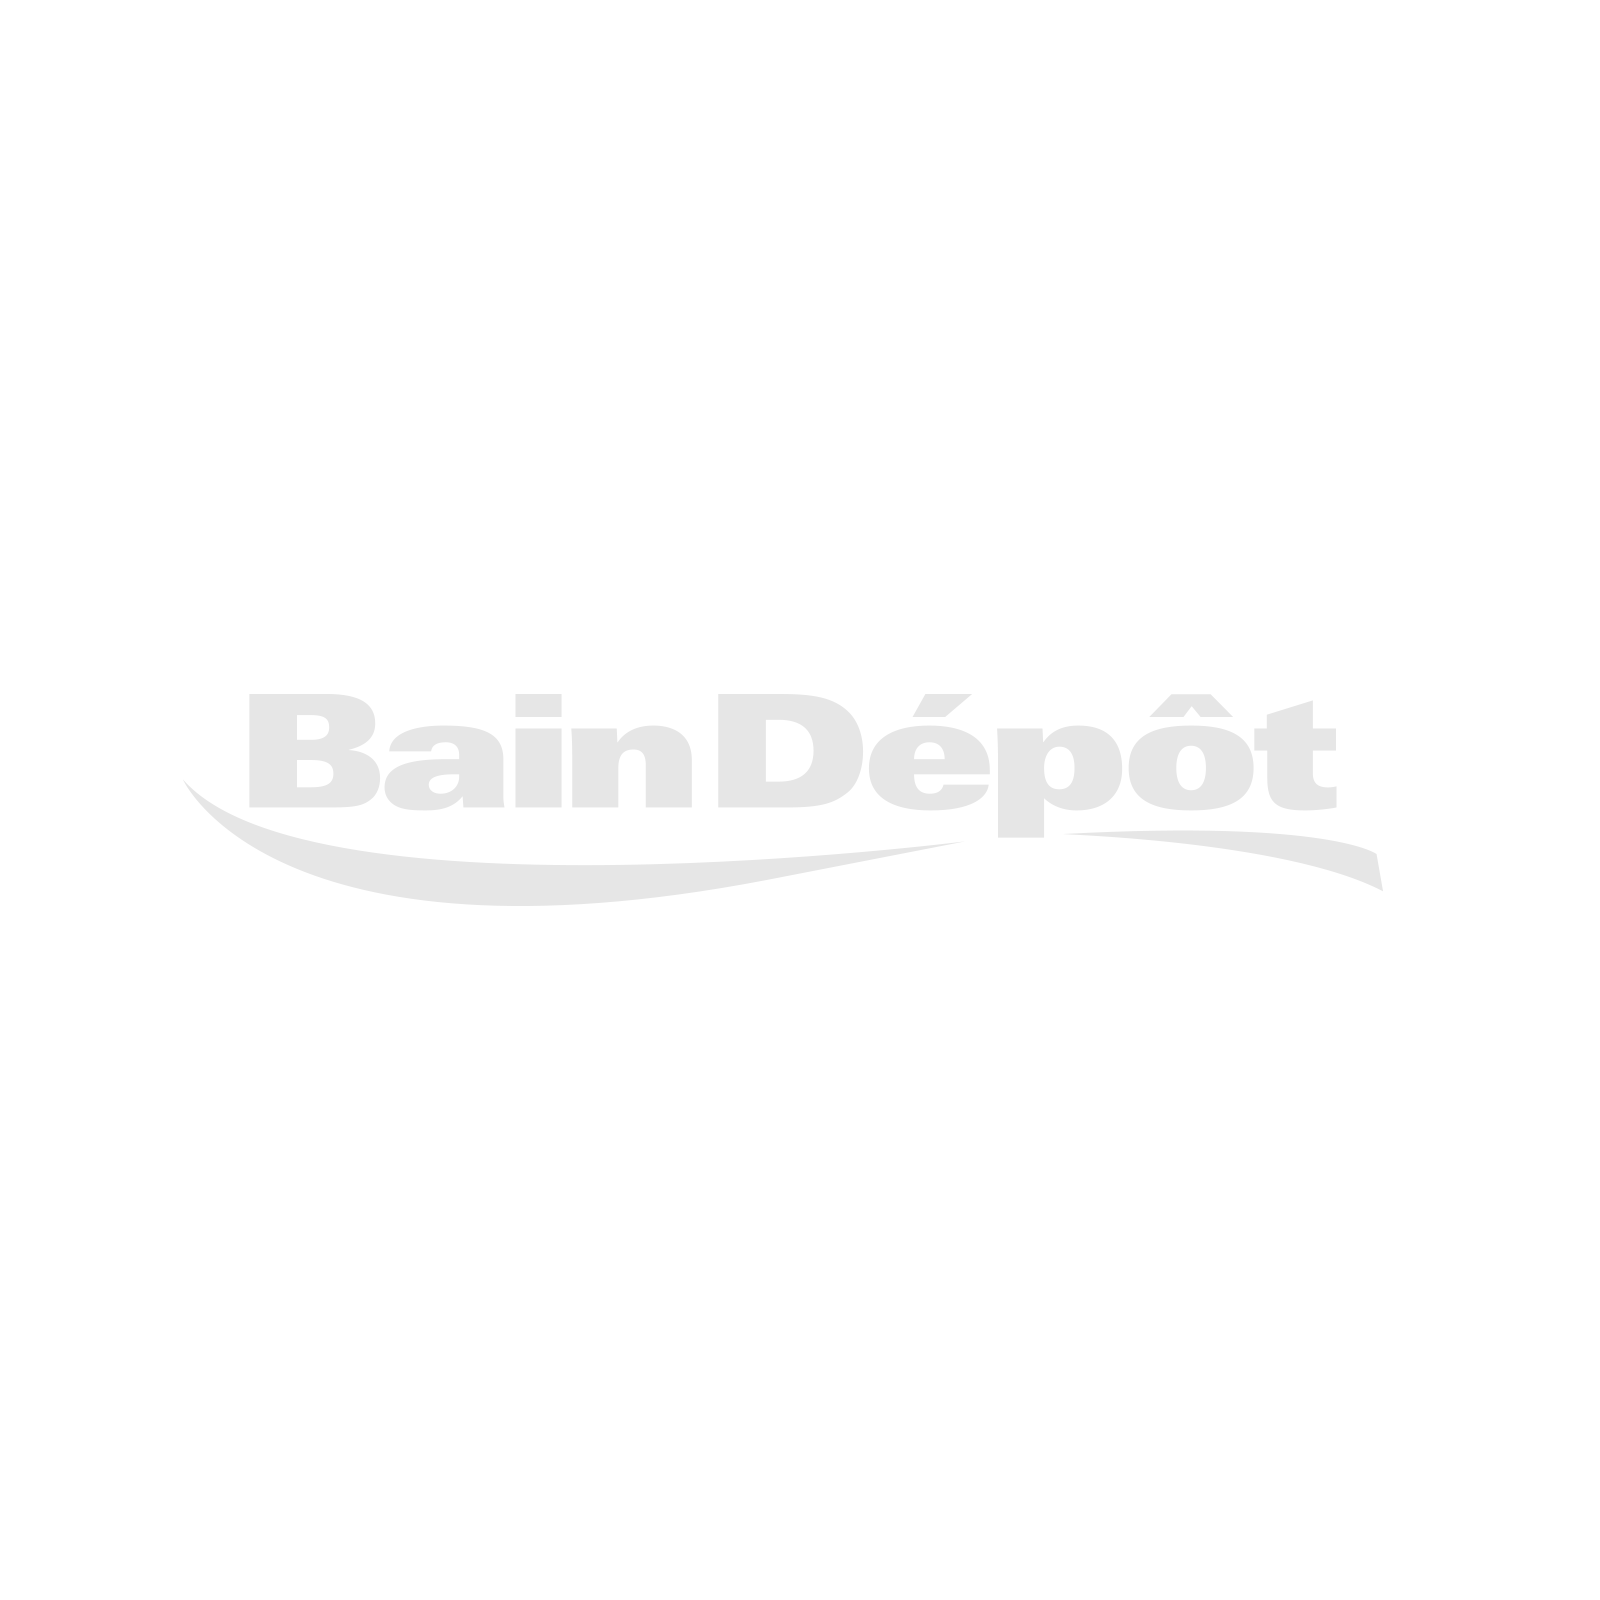 One-piece high efficiency toilet FERRA